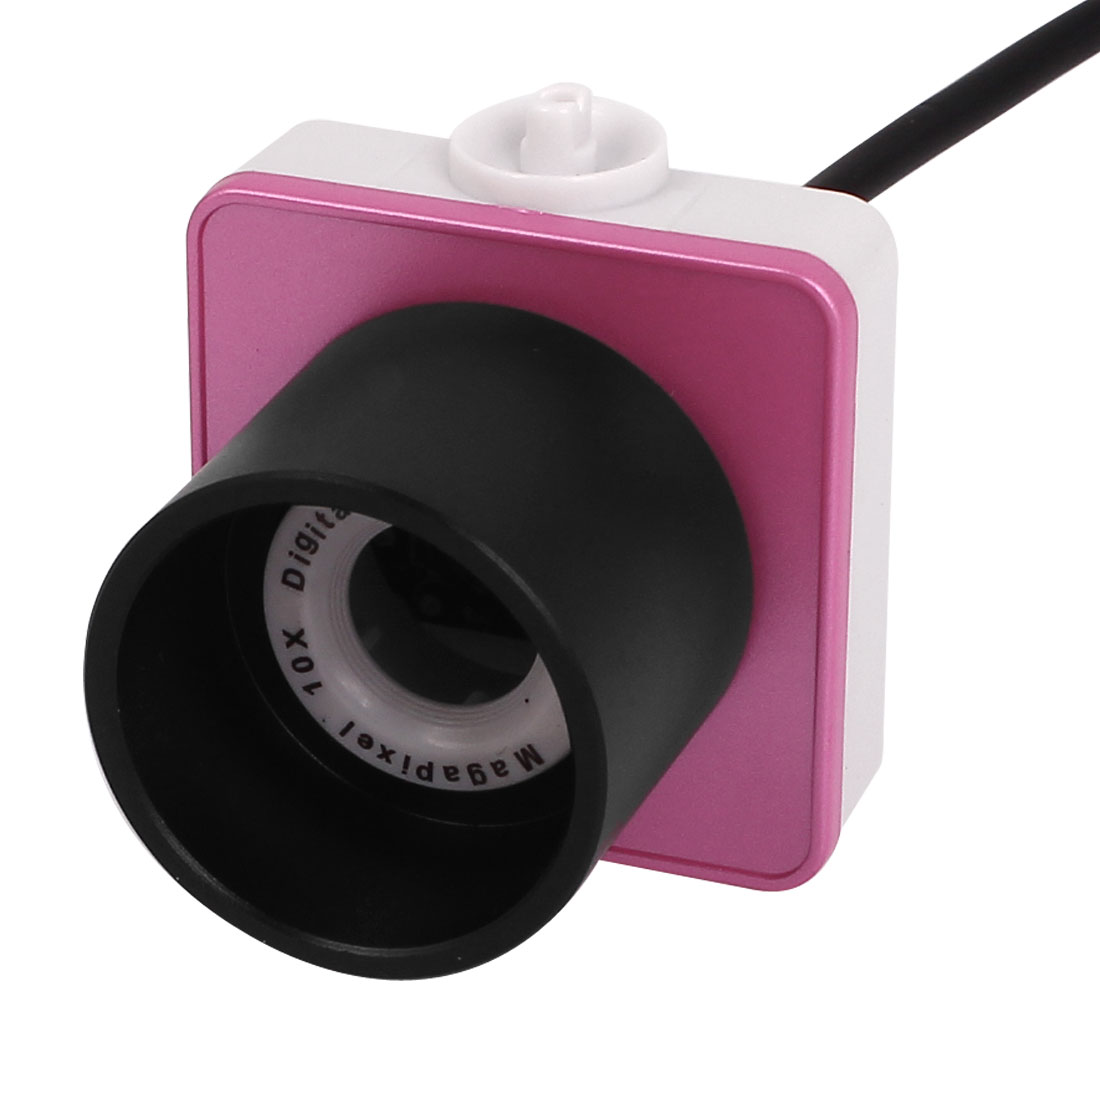 Angeleyes 3.0MP Electronic Camera Astronomical Computer USB Connect Eyepiece 10X